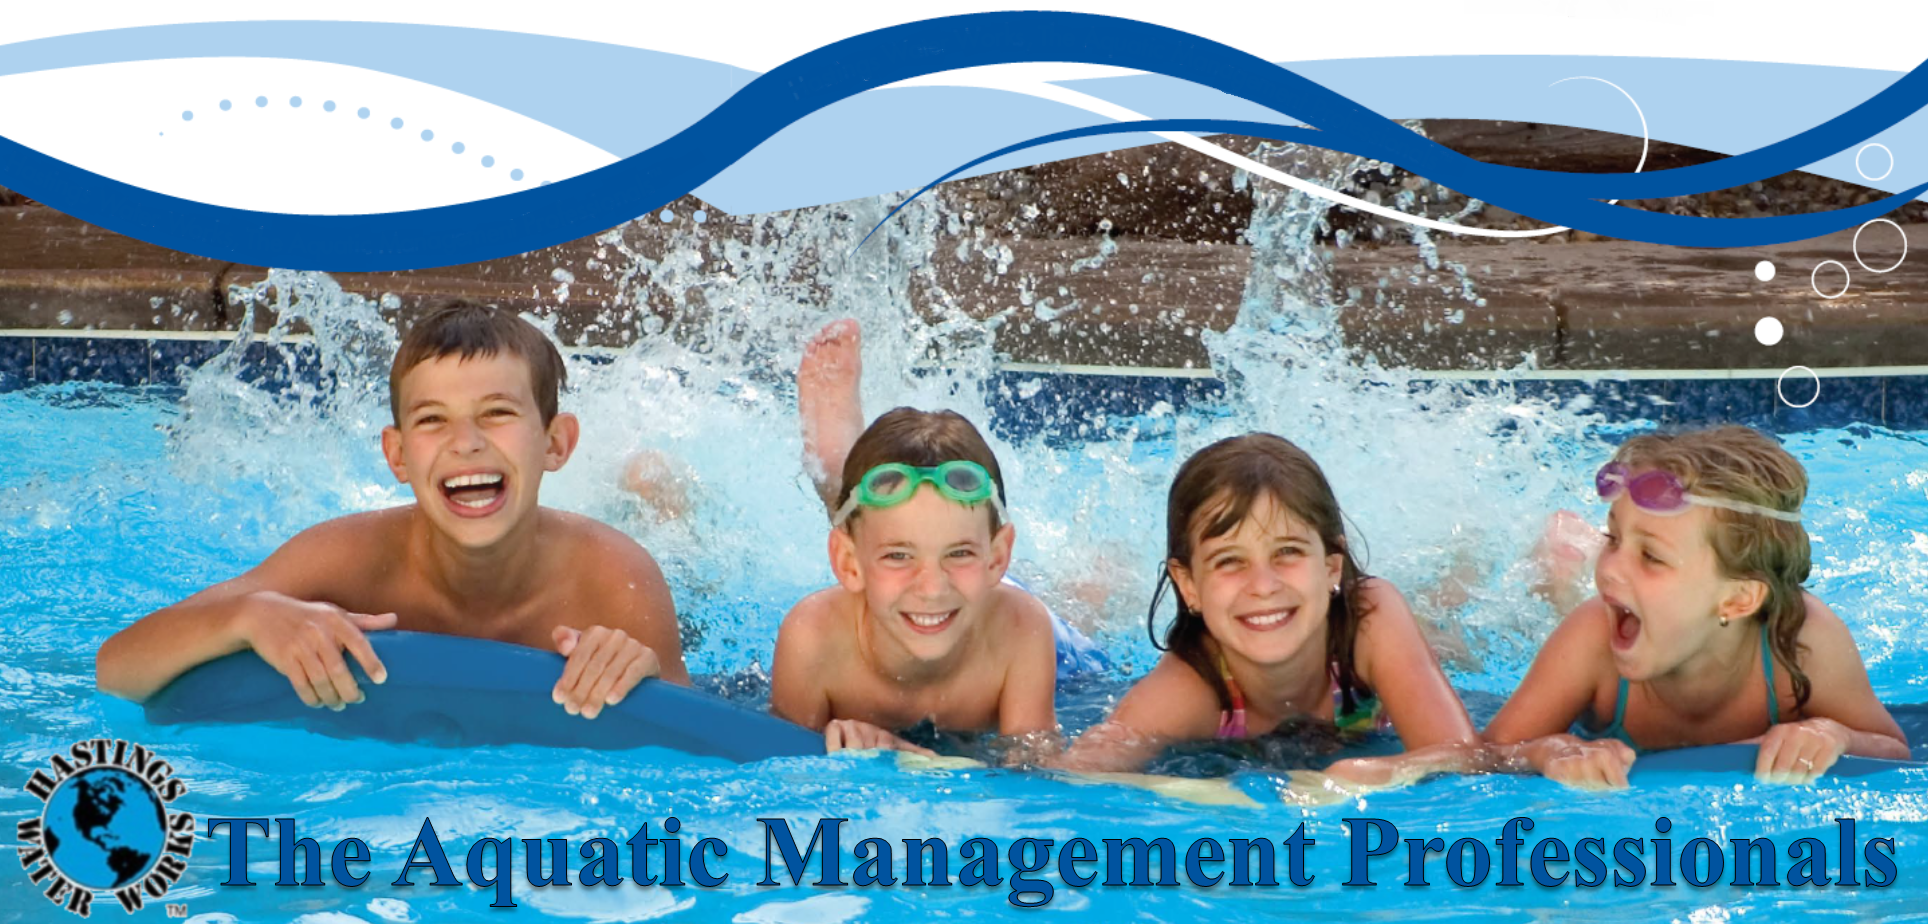 390f265fef42 Hastings Water Works Provides Safety and Peace of Mind for Our Clients and  their Families. Hastings Water Works is the largest swimming ...